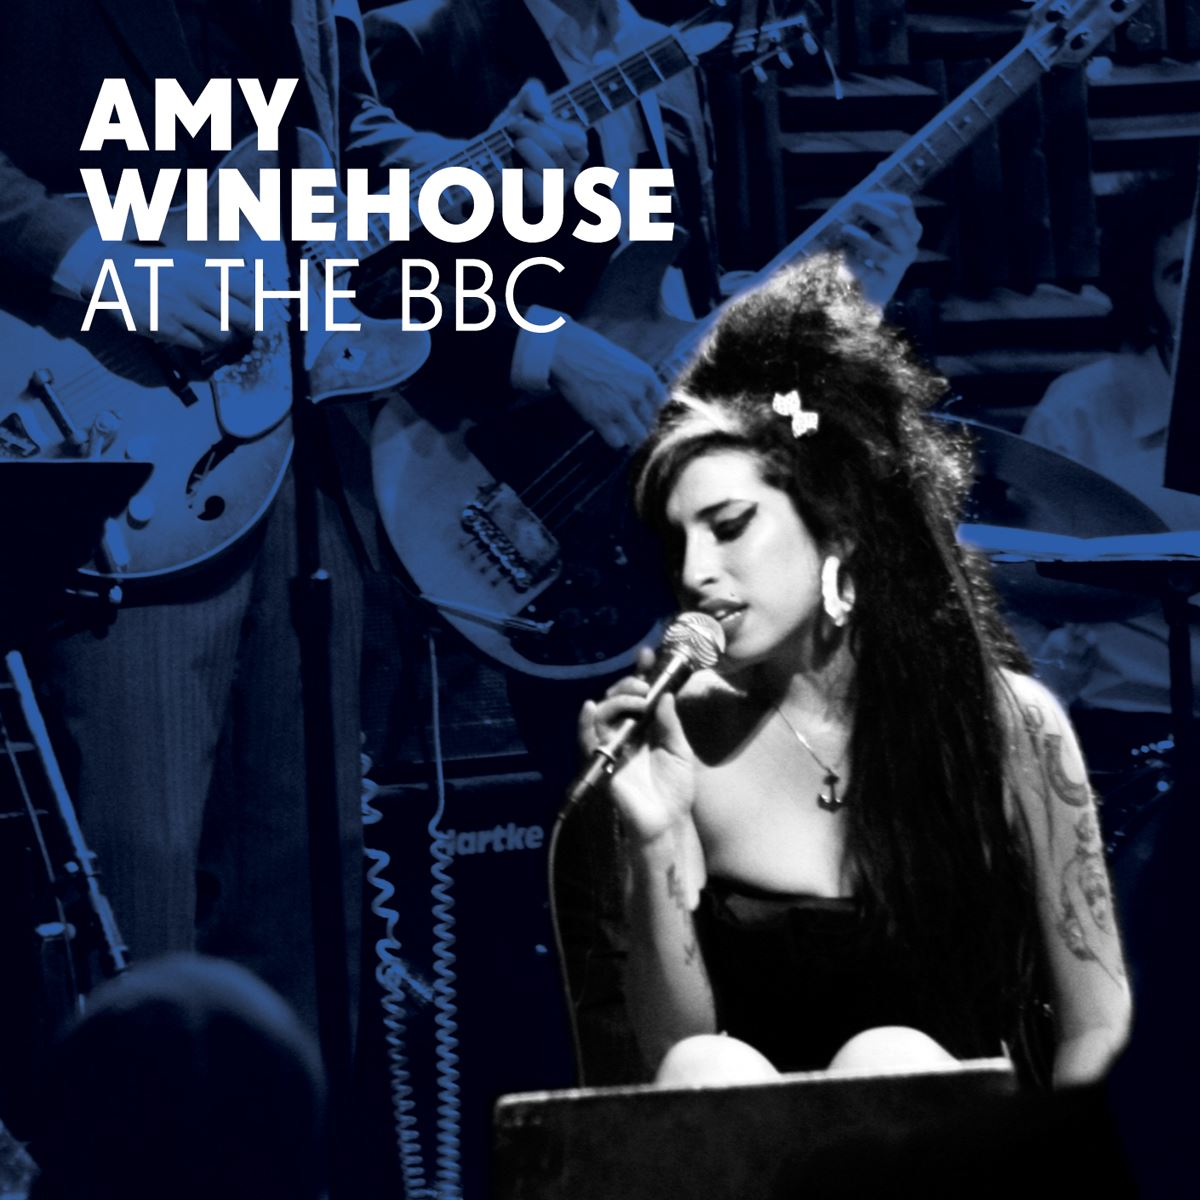 Cd/dvd amy winehouse at the bbc  - Sanborns